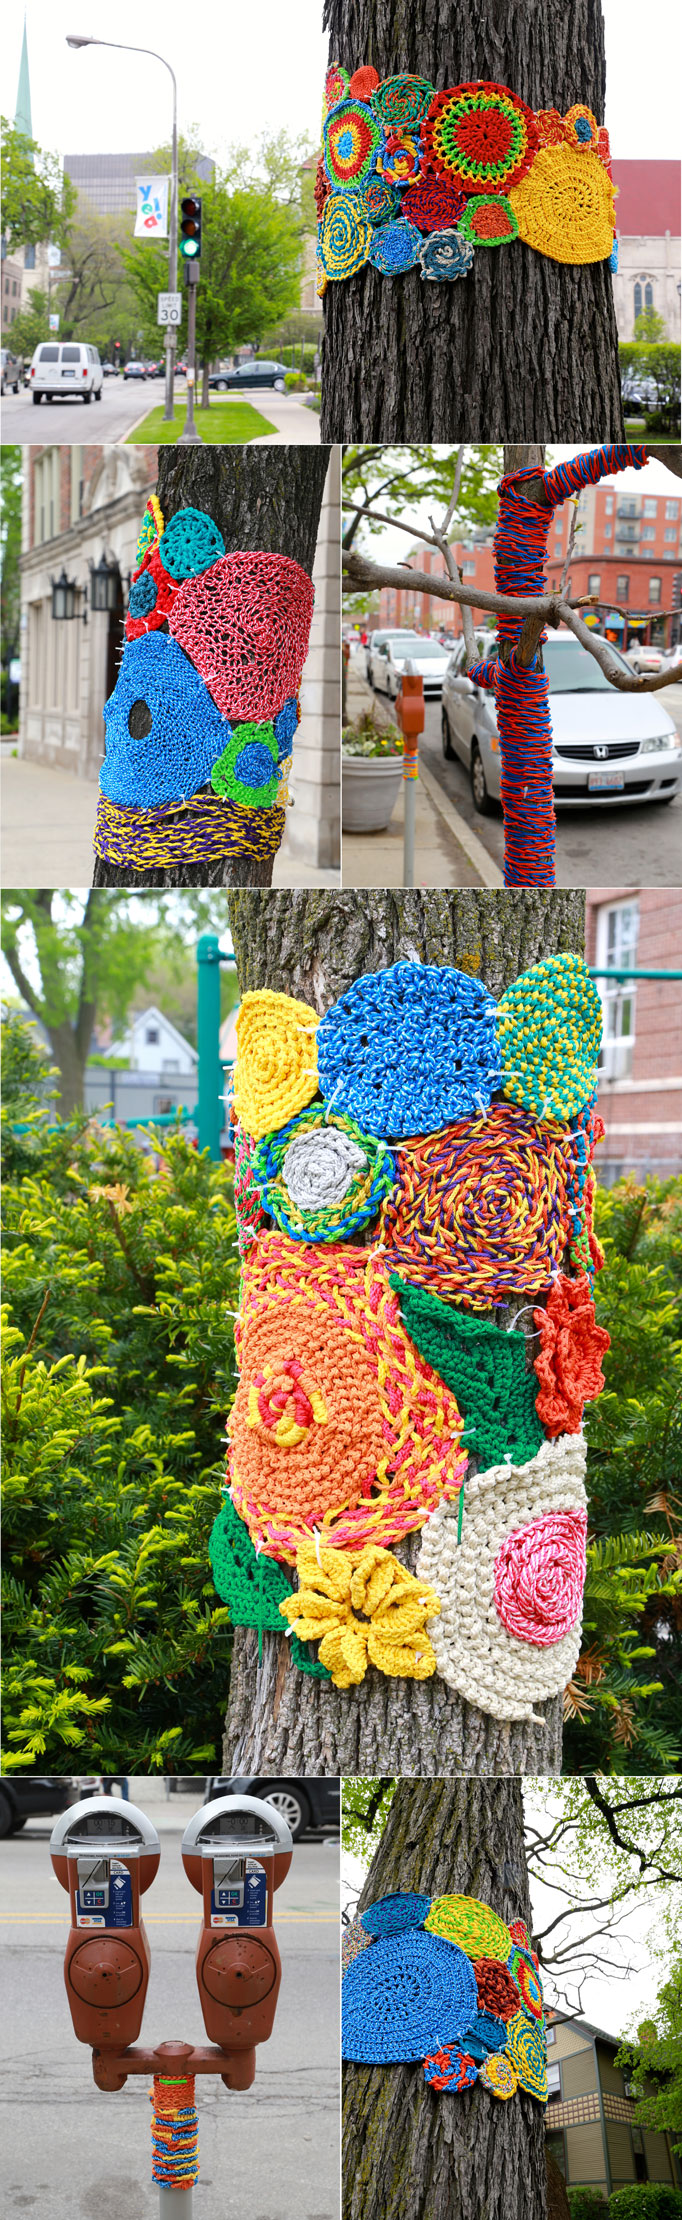 stumble-relish-evanston-yarn-bomb-682